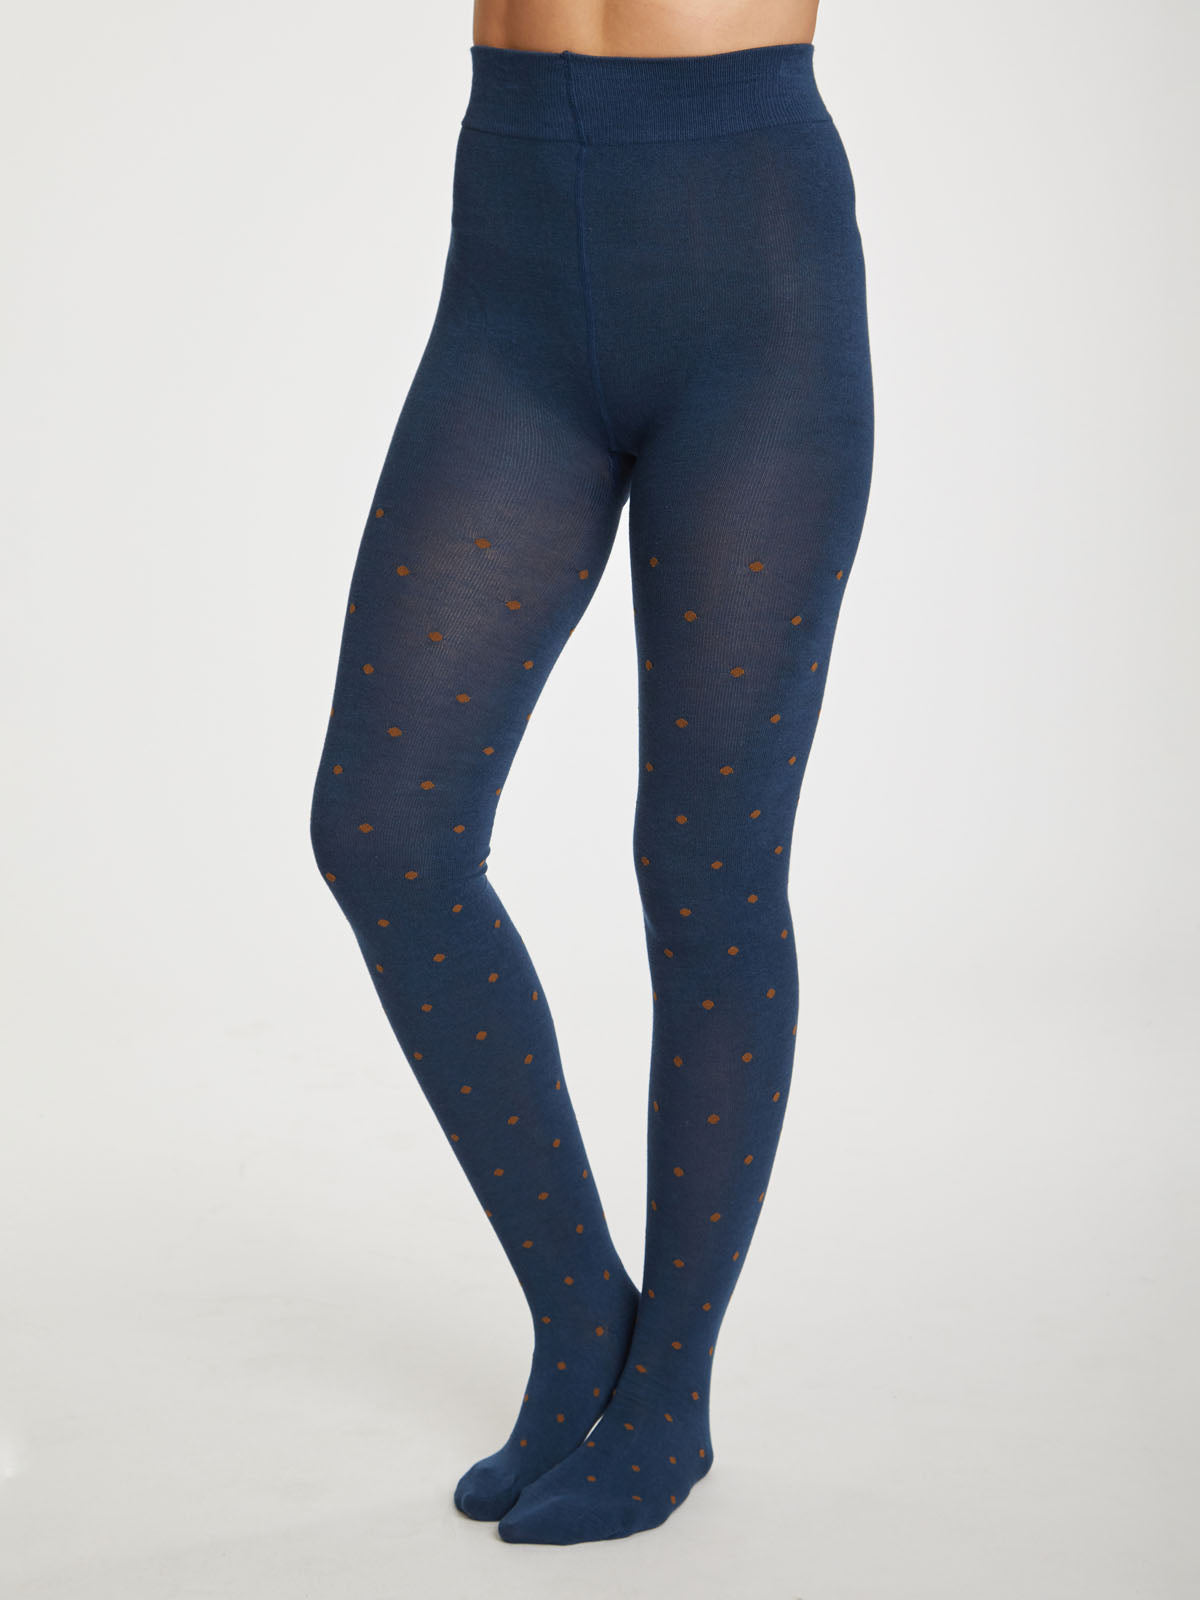 Thought AW20 Elgin Super Soft Bamboo Tights in Black